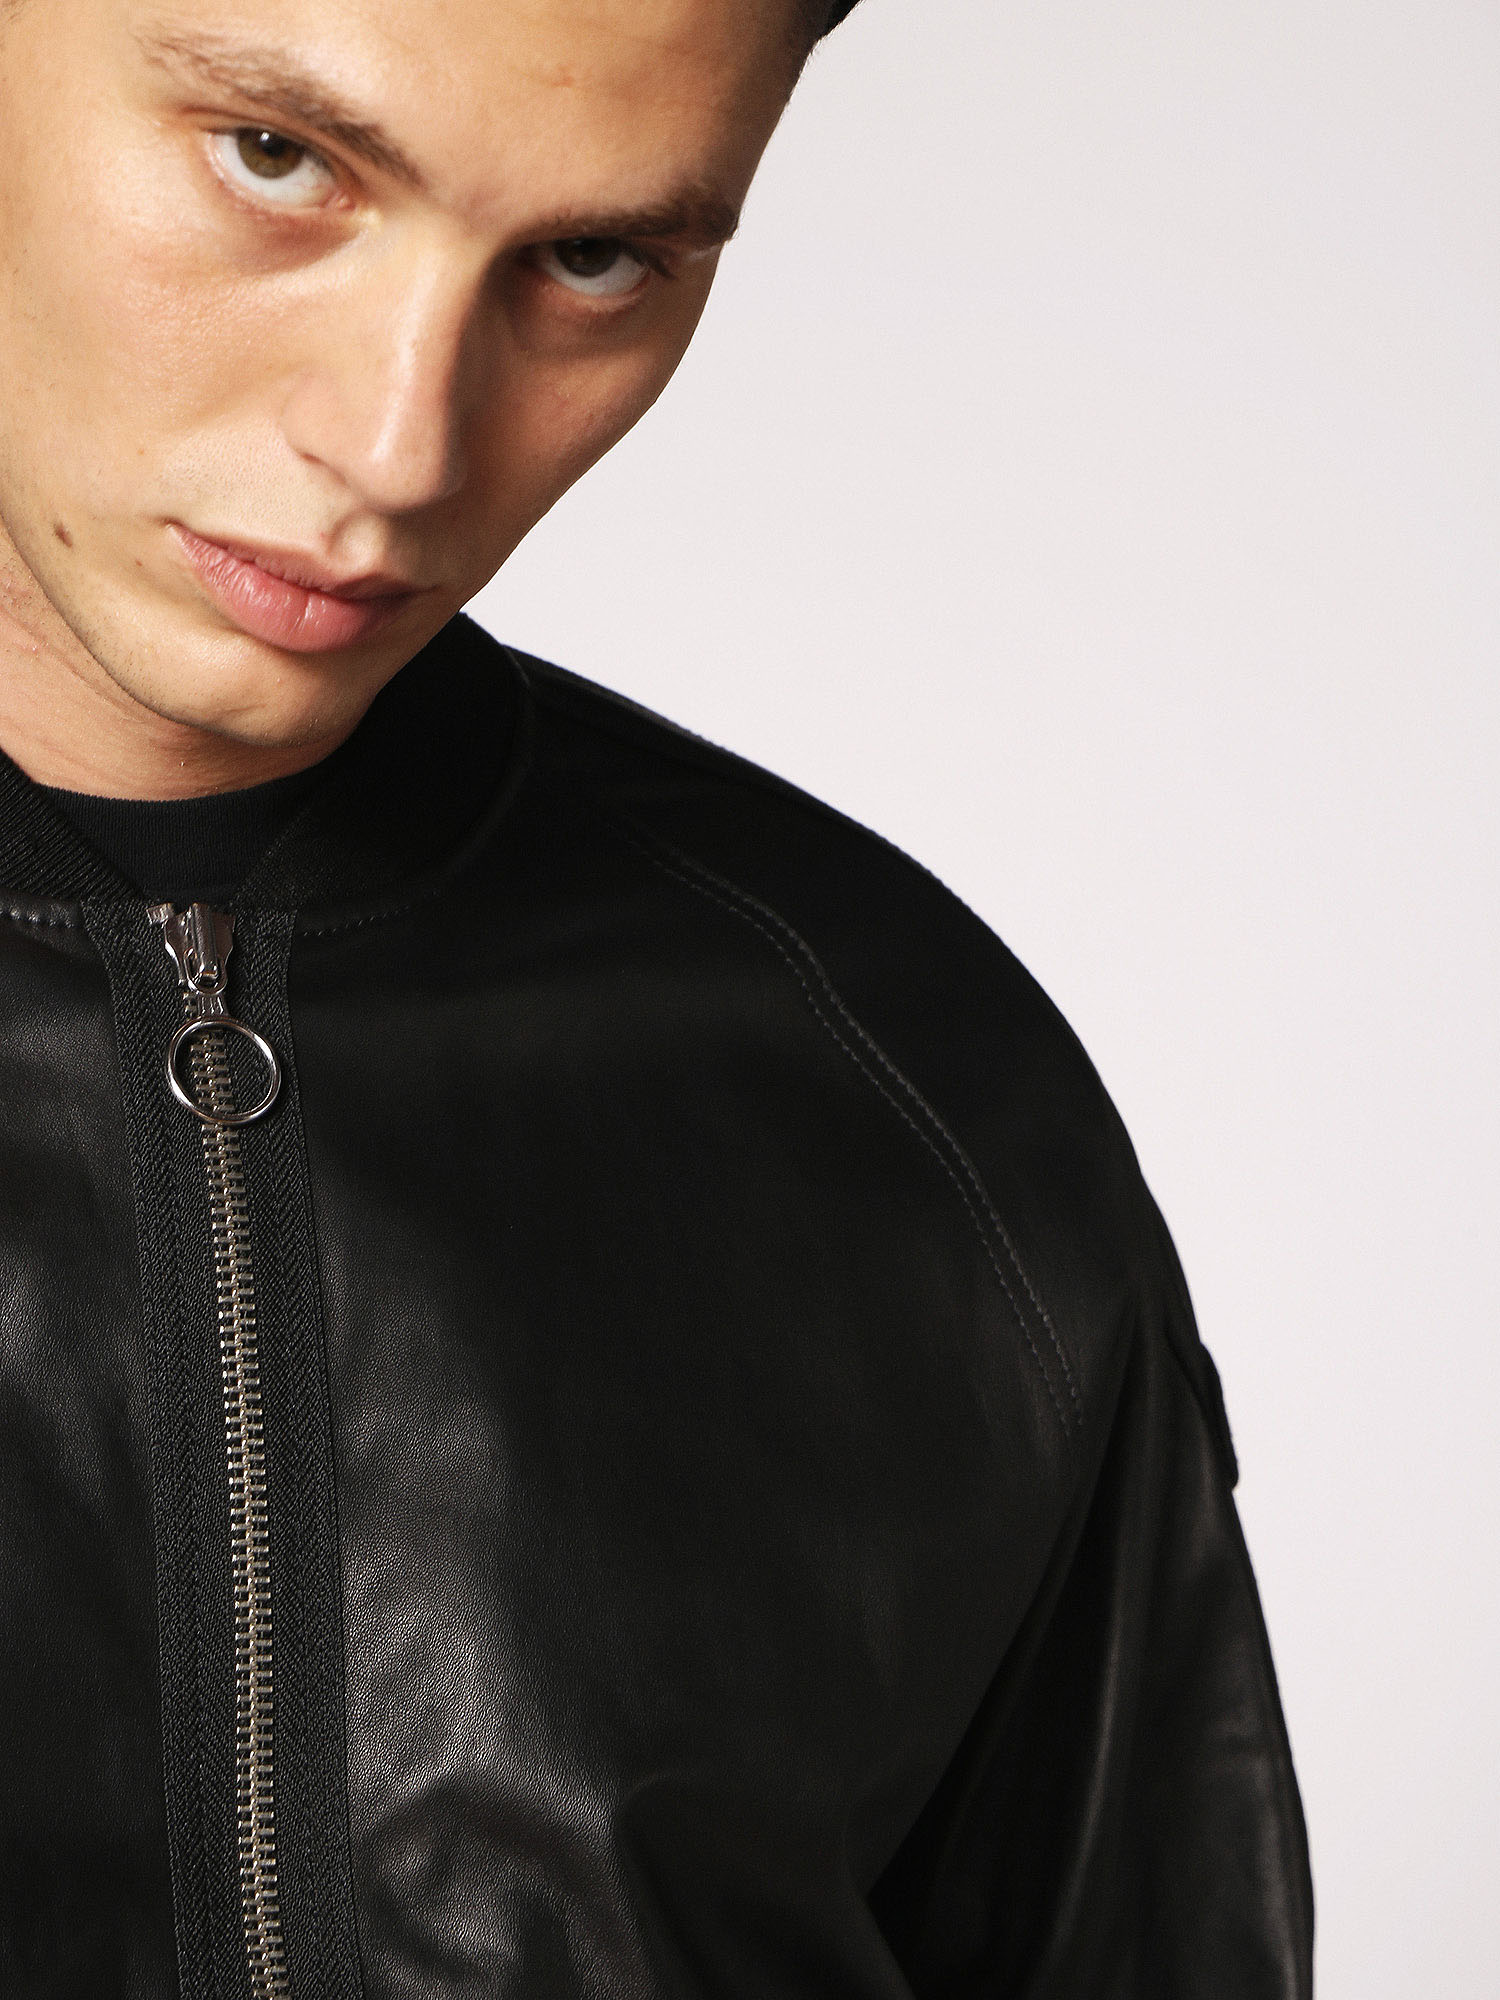 Diesel - L-PINS,  - Leather jackets - Image 4